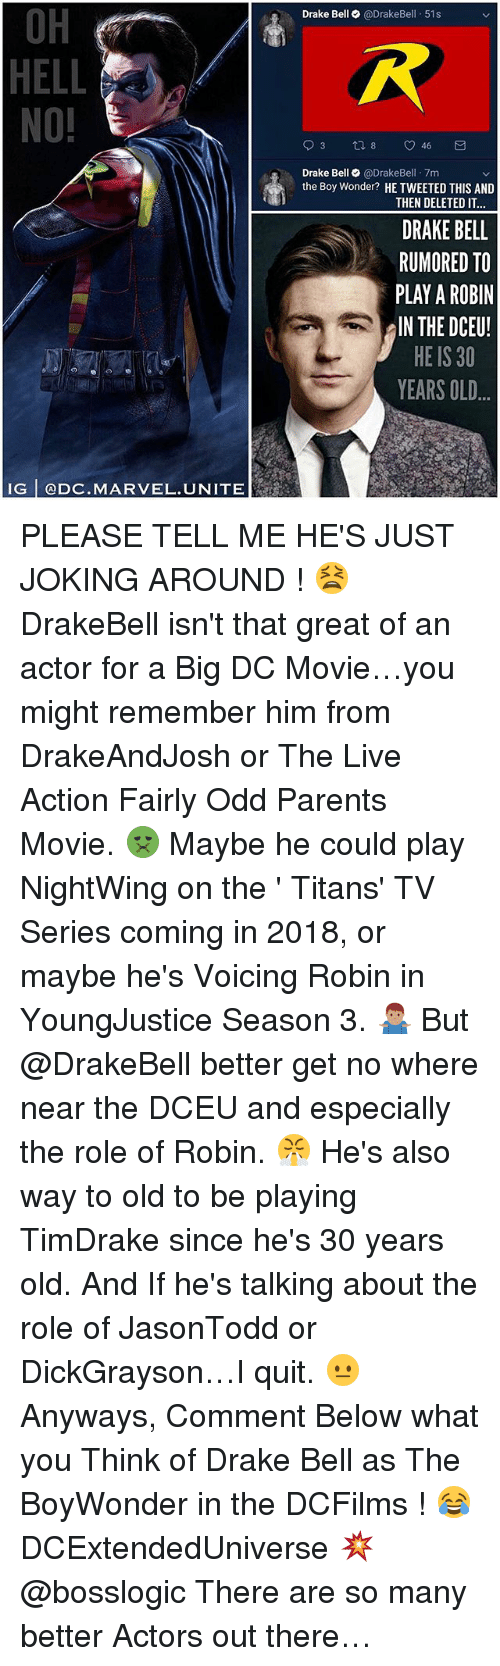 30 Years Old: OH  HELL  NO!  Drake Bell @DrakeBell 51s  Drake Bell@DrakeBel 7m  the Boy Wonder? HE TWEETED THIS AND  THEN DELETED IT  DRAKE BELL  RUMORED TO  PLAY A ROBIN  IN THE DCEU!  HE IS 30  YEARS OLD  IG @DC.MARVEL.UNITE PLEASE TELL ME HE'S JUST JOKING AROUND ! 😫 DrakeBell isn't that great of an actor for a Big DC Movie…you might remember him from DrakeAndJosh or The Live Action Fairly Odd Parents Movie. 🤢 Maybe he could play NightWing on the ' Titans' TV Series coming in 2018, or maybe he's Voicing Robin in YoungJustice Season 3. 🤷🏽‍♂️ But @DrakeBell better get no where near the DCEU and especially the role of Robin. 😤 He's also way to old to be playing TimDrake since he's 30 years old. And If he's talking about the role of JasonTodd or DickGrayson…I quit. 😐 Anyways, Comment Below what you Think of Drake Bell as The BoyWonder in the DCFilms ! 😂 DCExtendedUniverse 💥 @bosslogic There are so many better Actors out there…